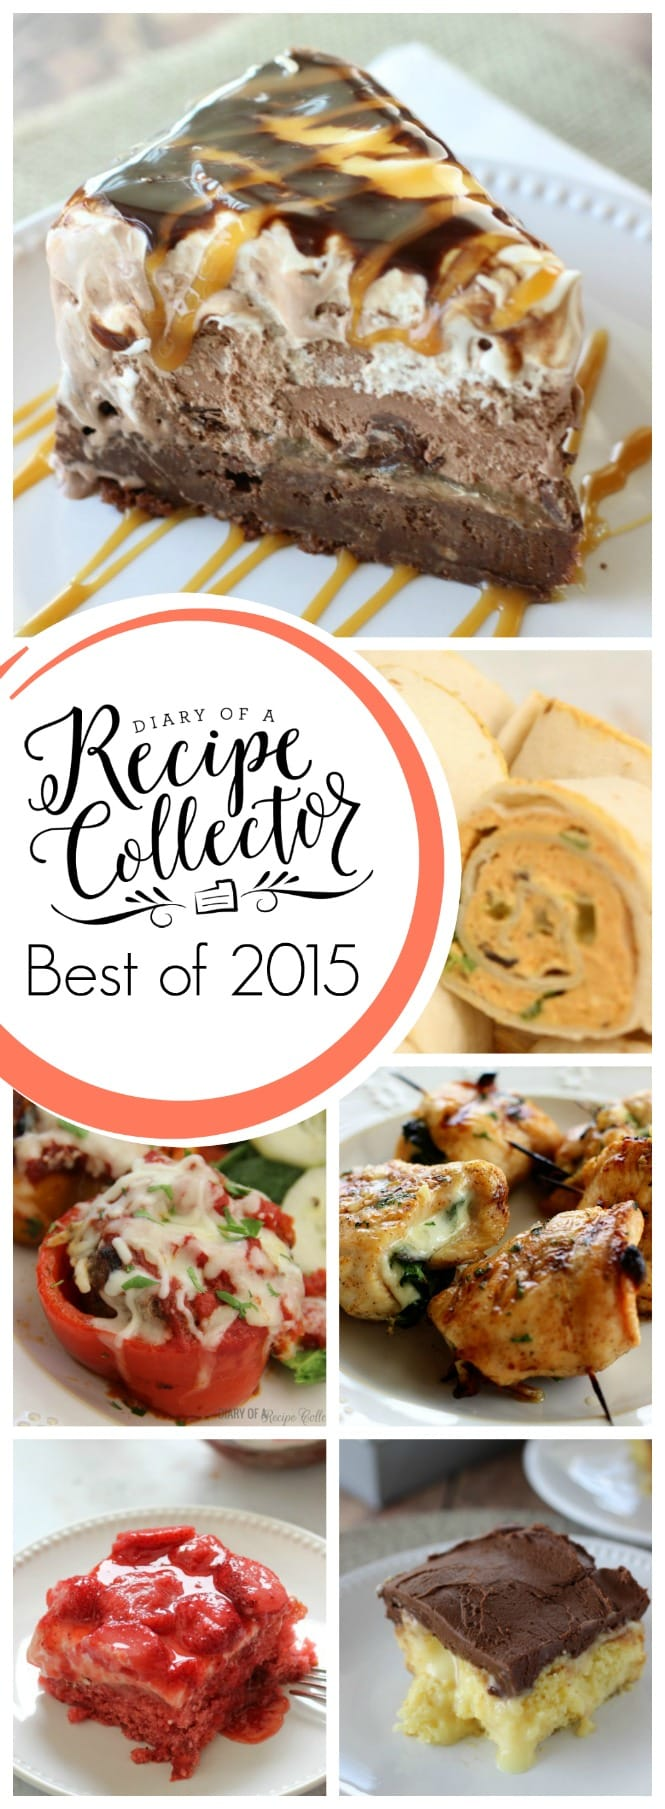 Best of 2015 on Diary of a Recipe Collector - Top ten recipe posts of the year.